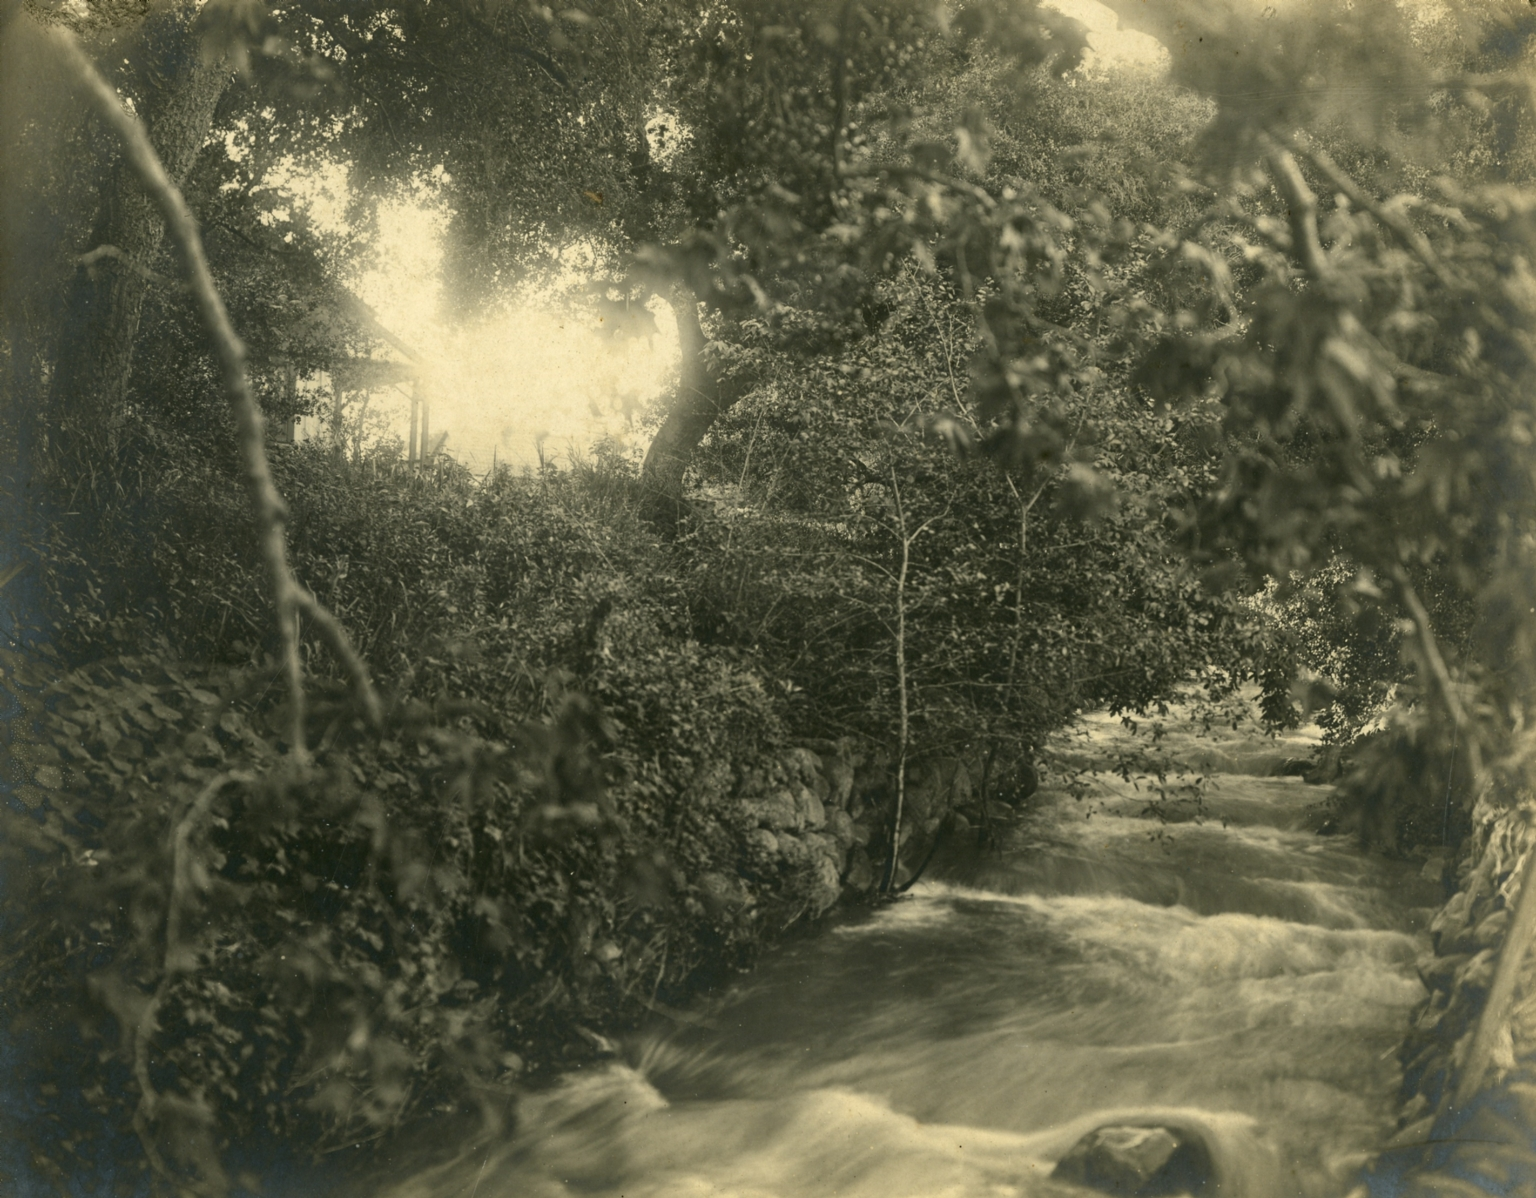 The Grove House and Montecito Creek